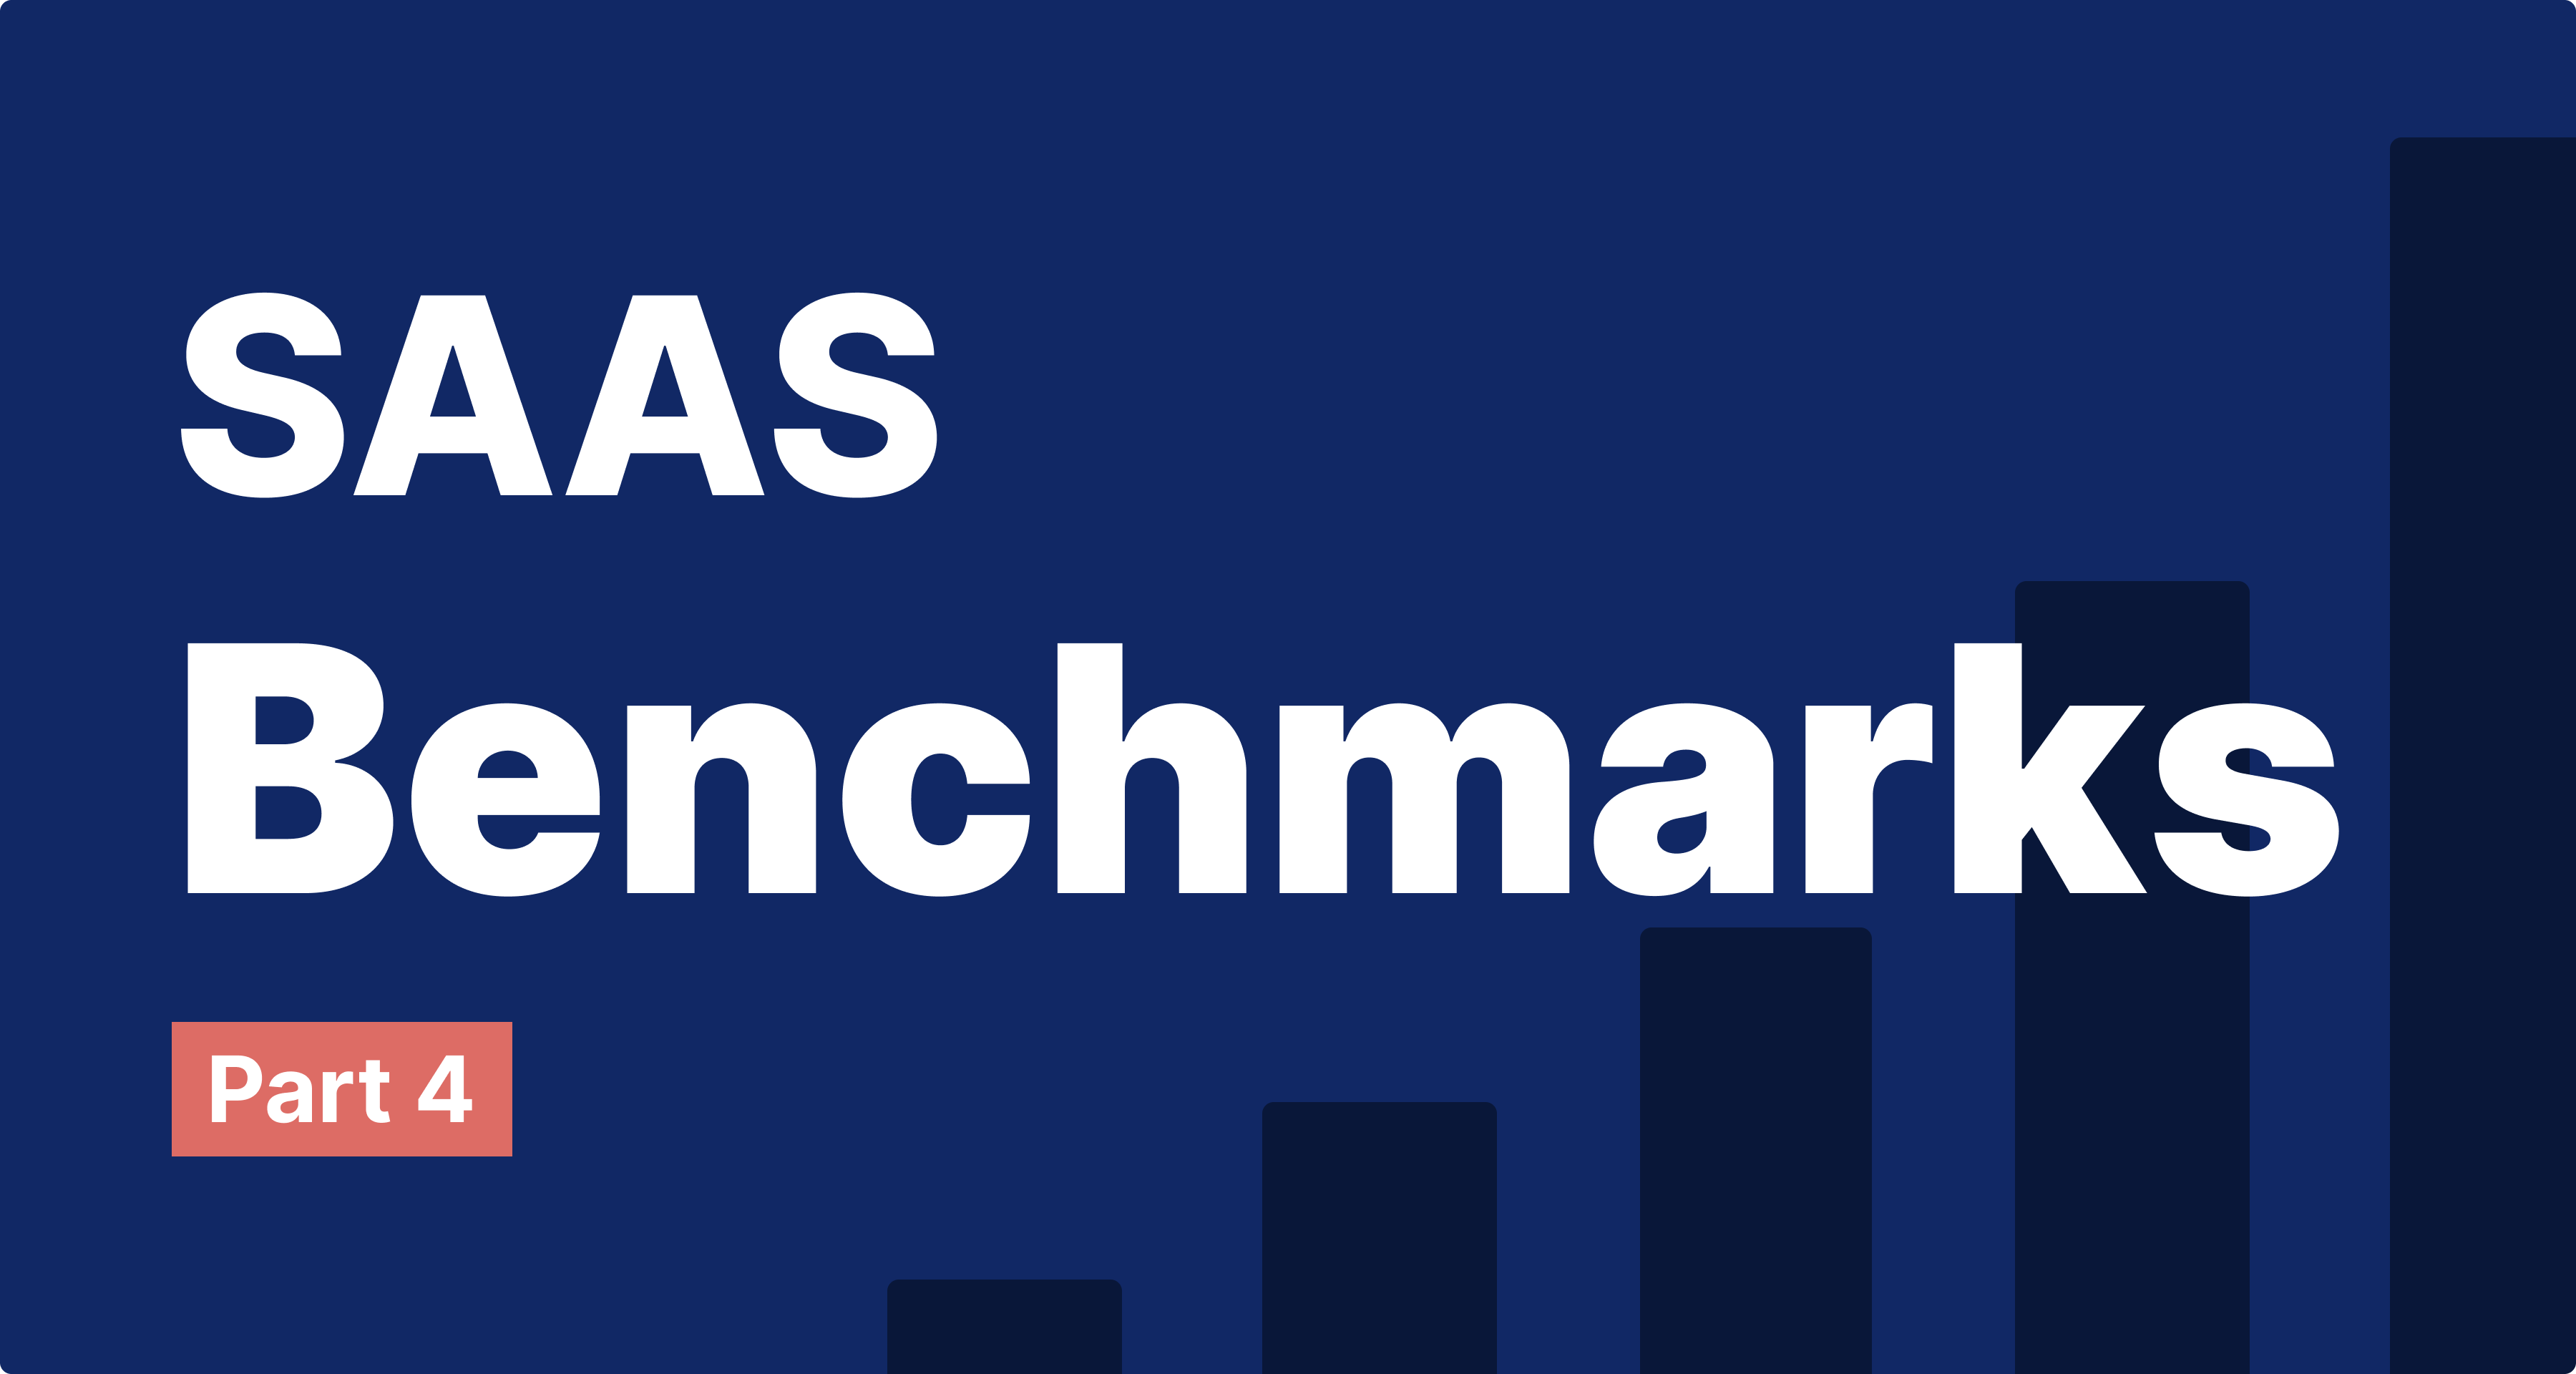 You are currently viewing SAAS Benchmarks: Cash burn